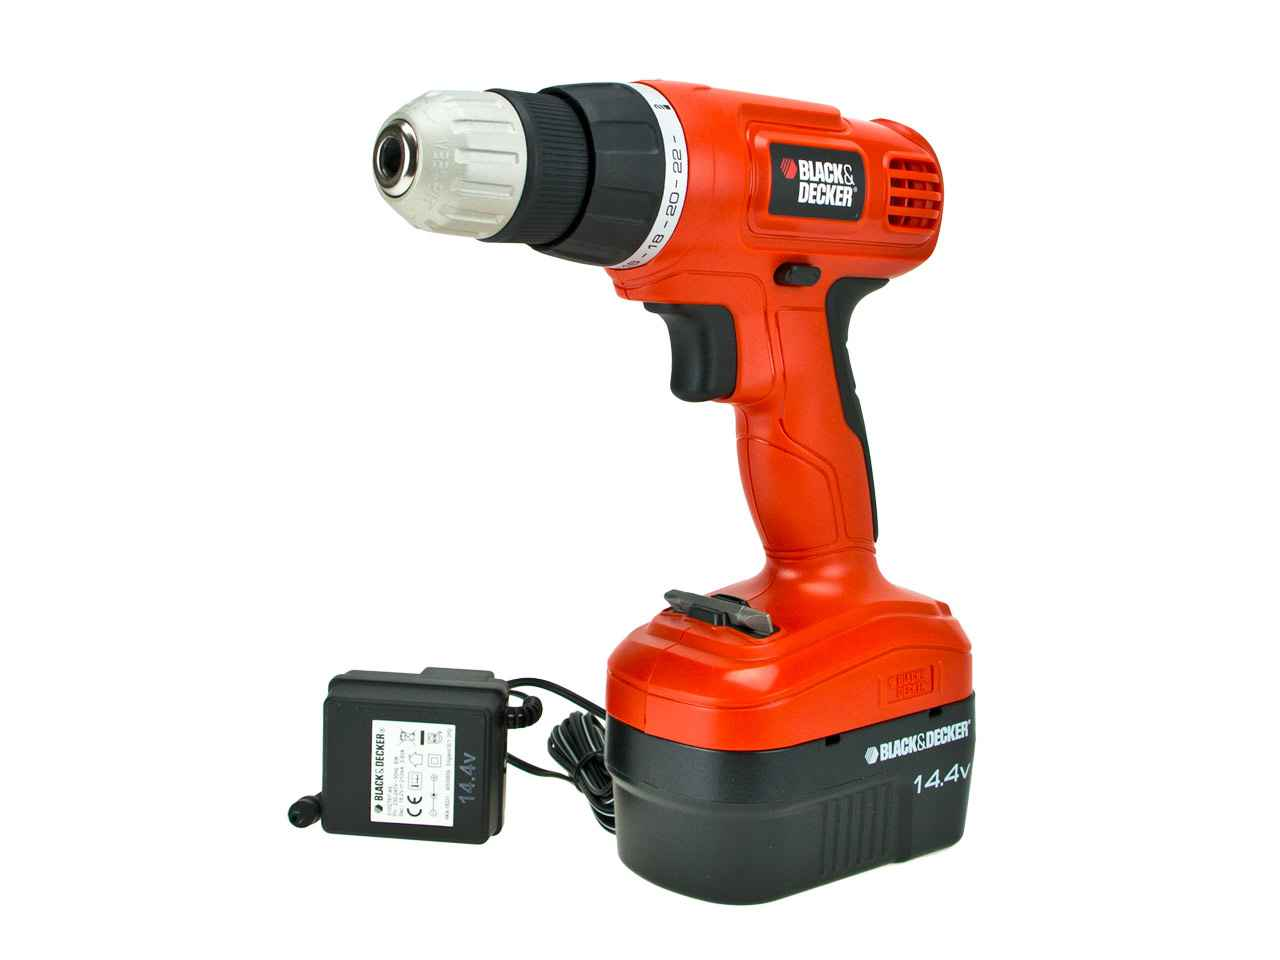 black and decker epc14ca 1 0ah nicd cordless drill driver. Black Bedroom Furniture Sets. Home Design Ideas